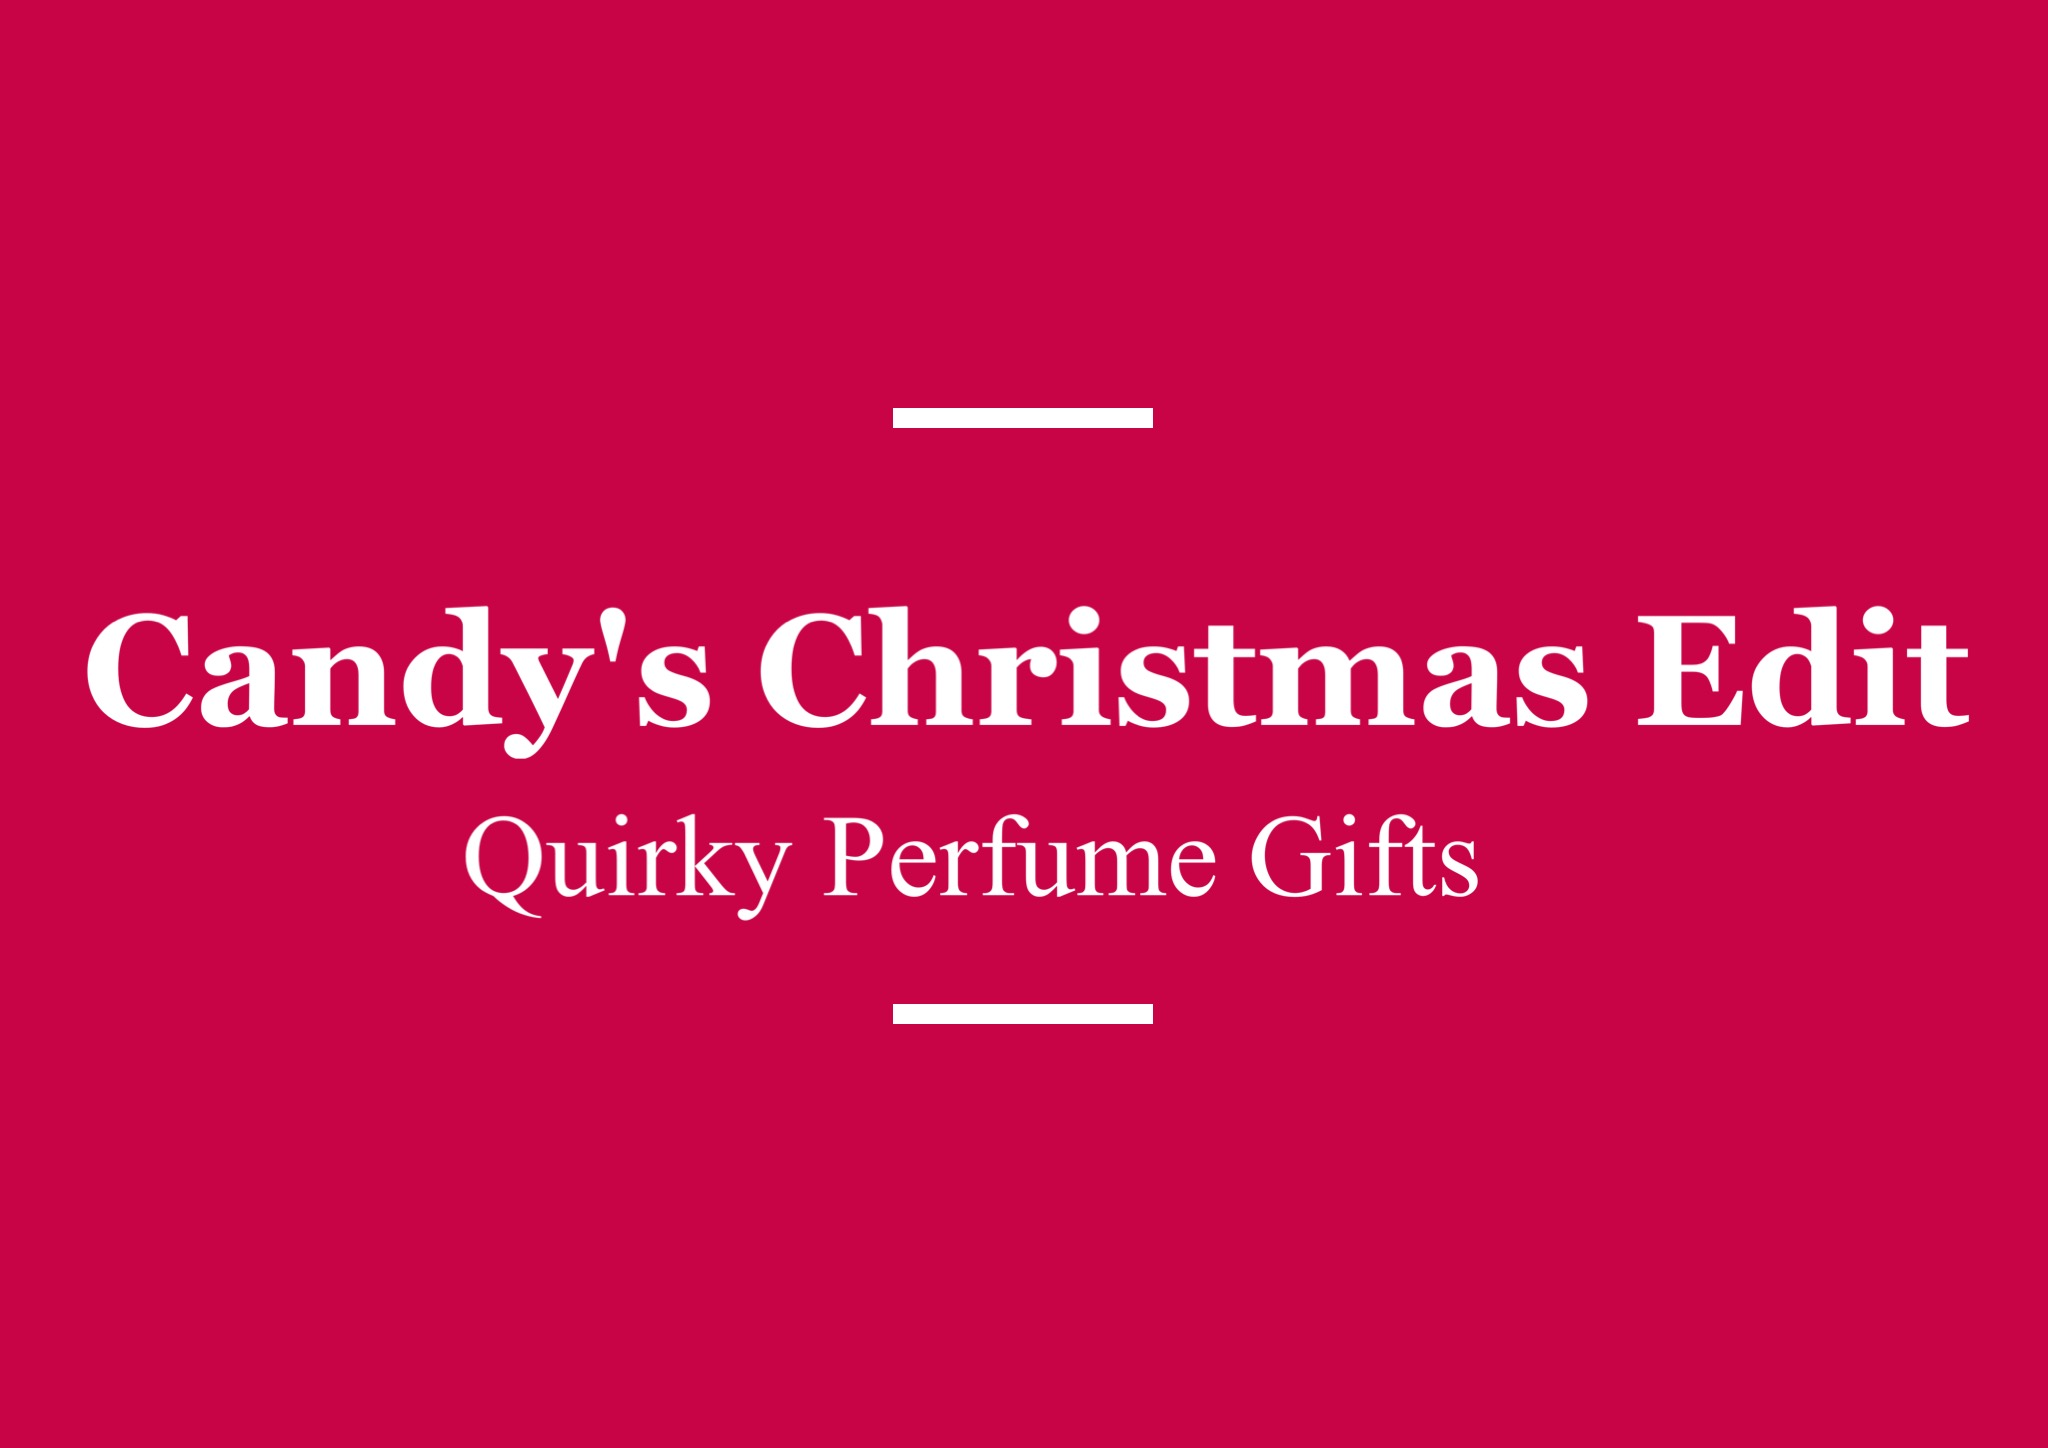 Quirky Perfume Gifts